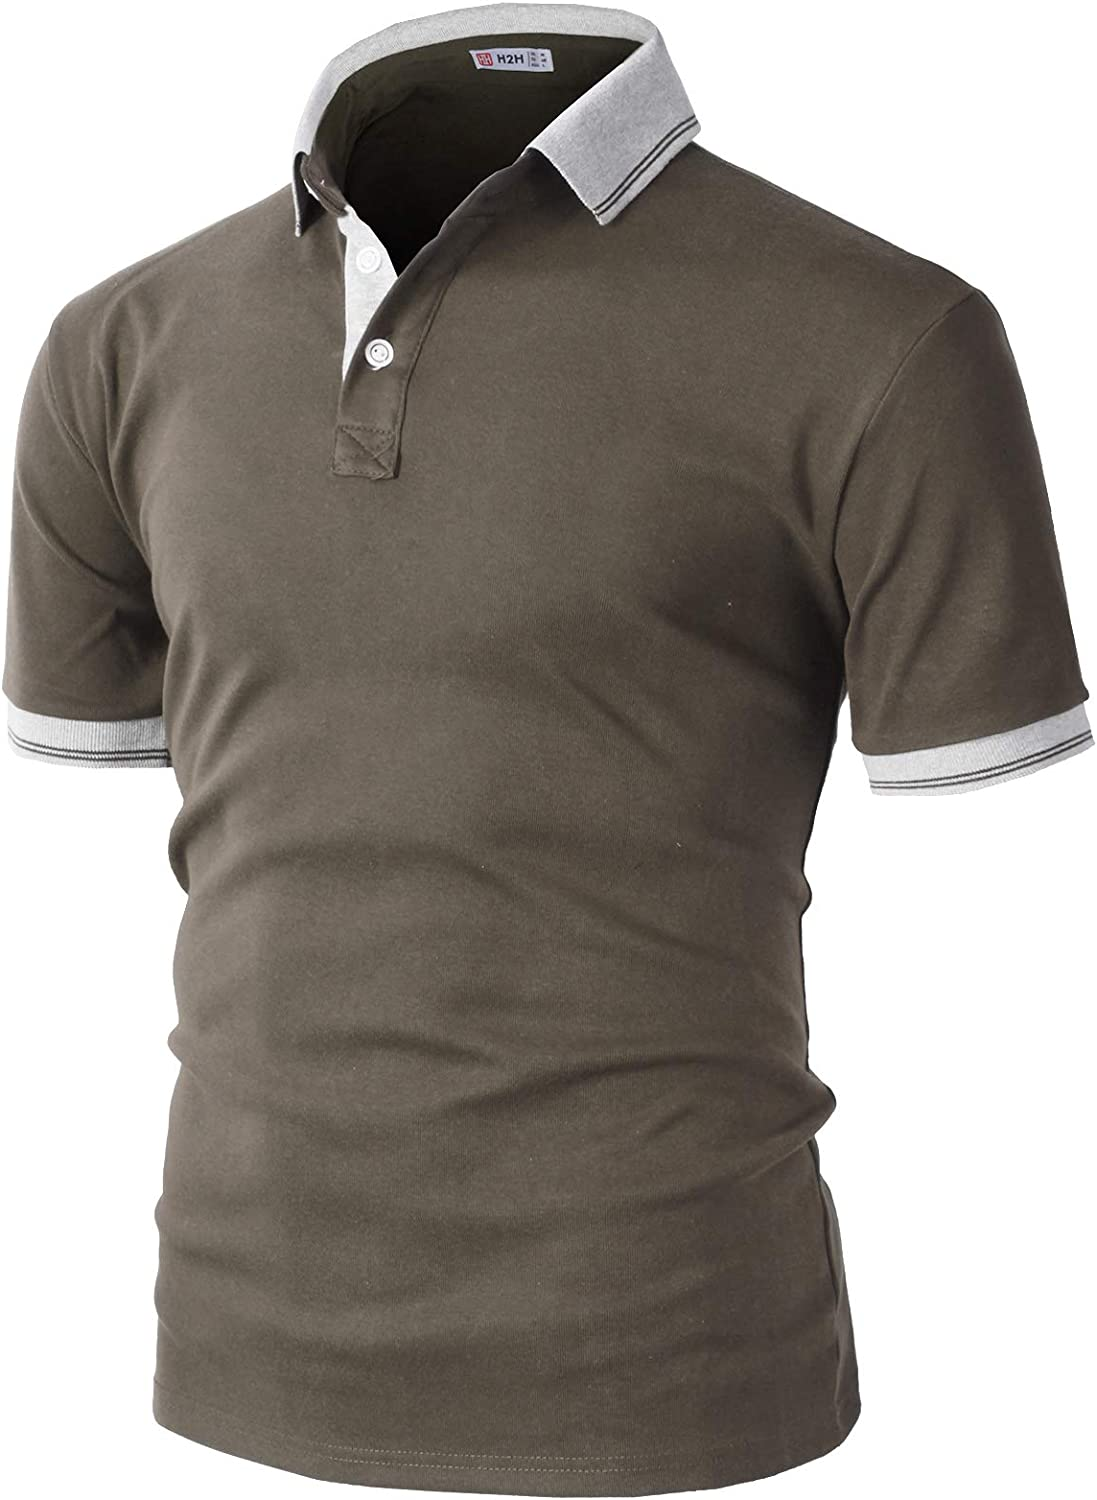 favorite H2H Mens Casual Slim Fit Polo Des and Styles Various of T-Shirts Mail order cheap